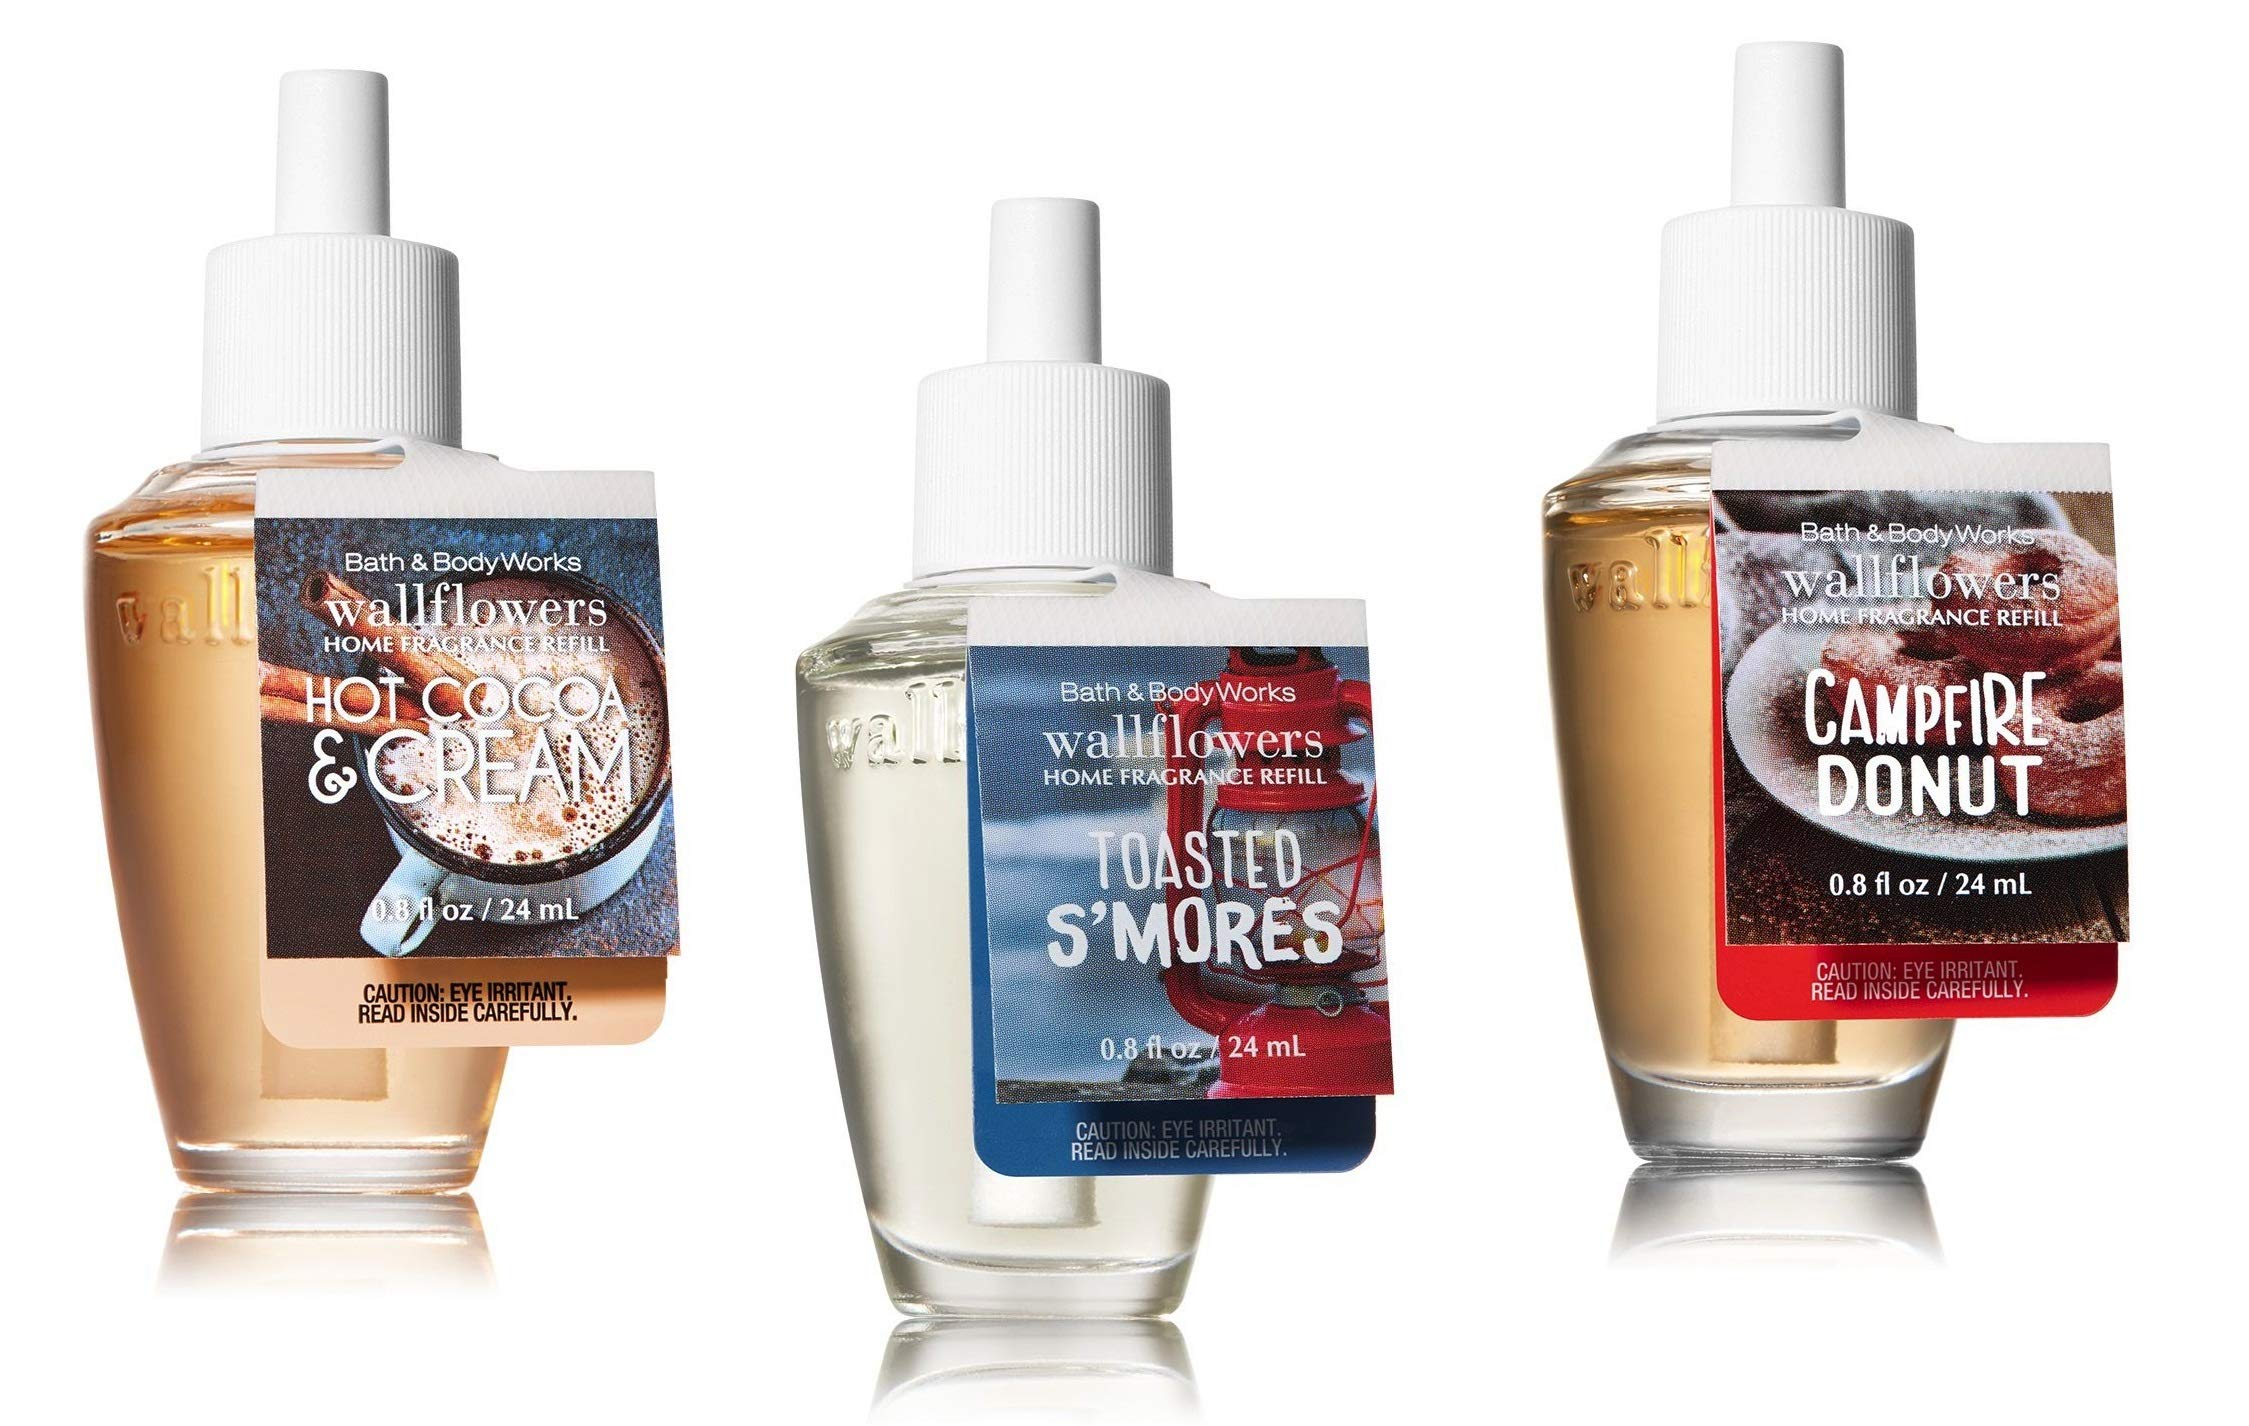 Bath and Body Works Fall Treats Wallflower Trio -- Hot Cocoa and Cream, Campfire Donut, Toasted S'mores Marshmallows